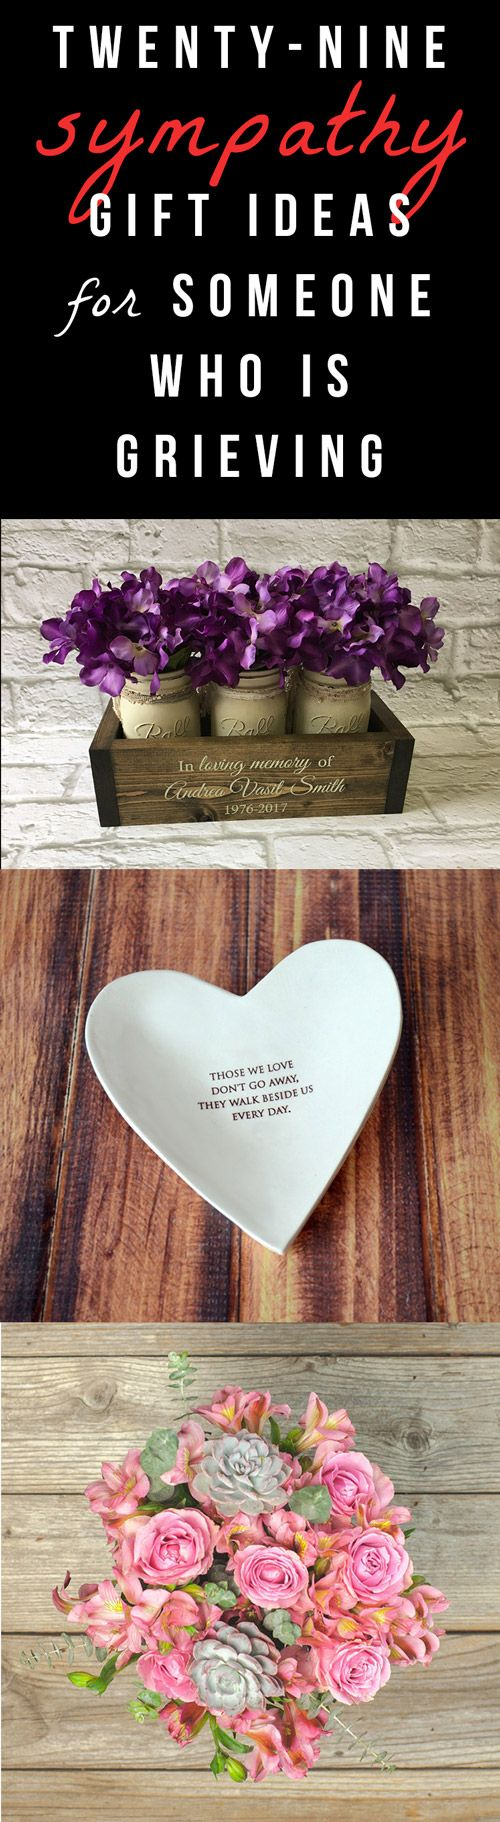 Sympathy Gift Ideas And Memorial Gifts For Someone Who Has Lost A